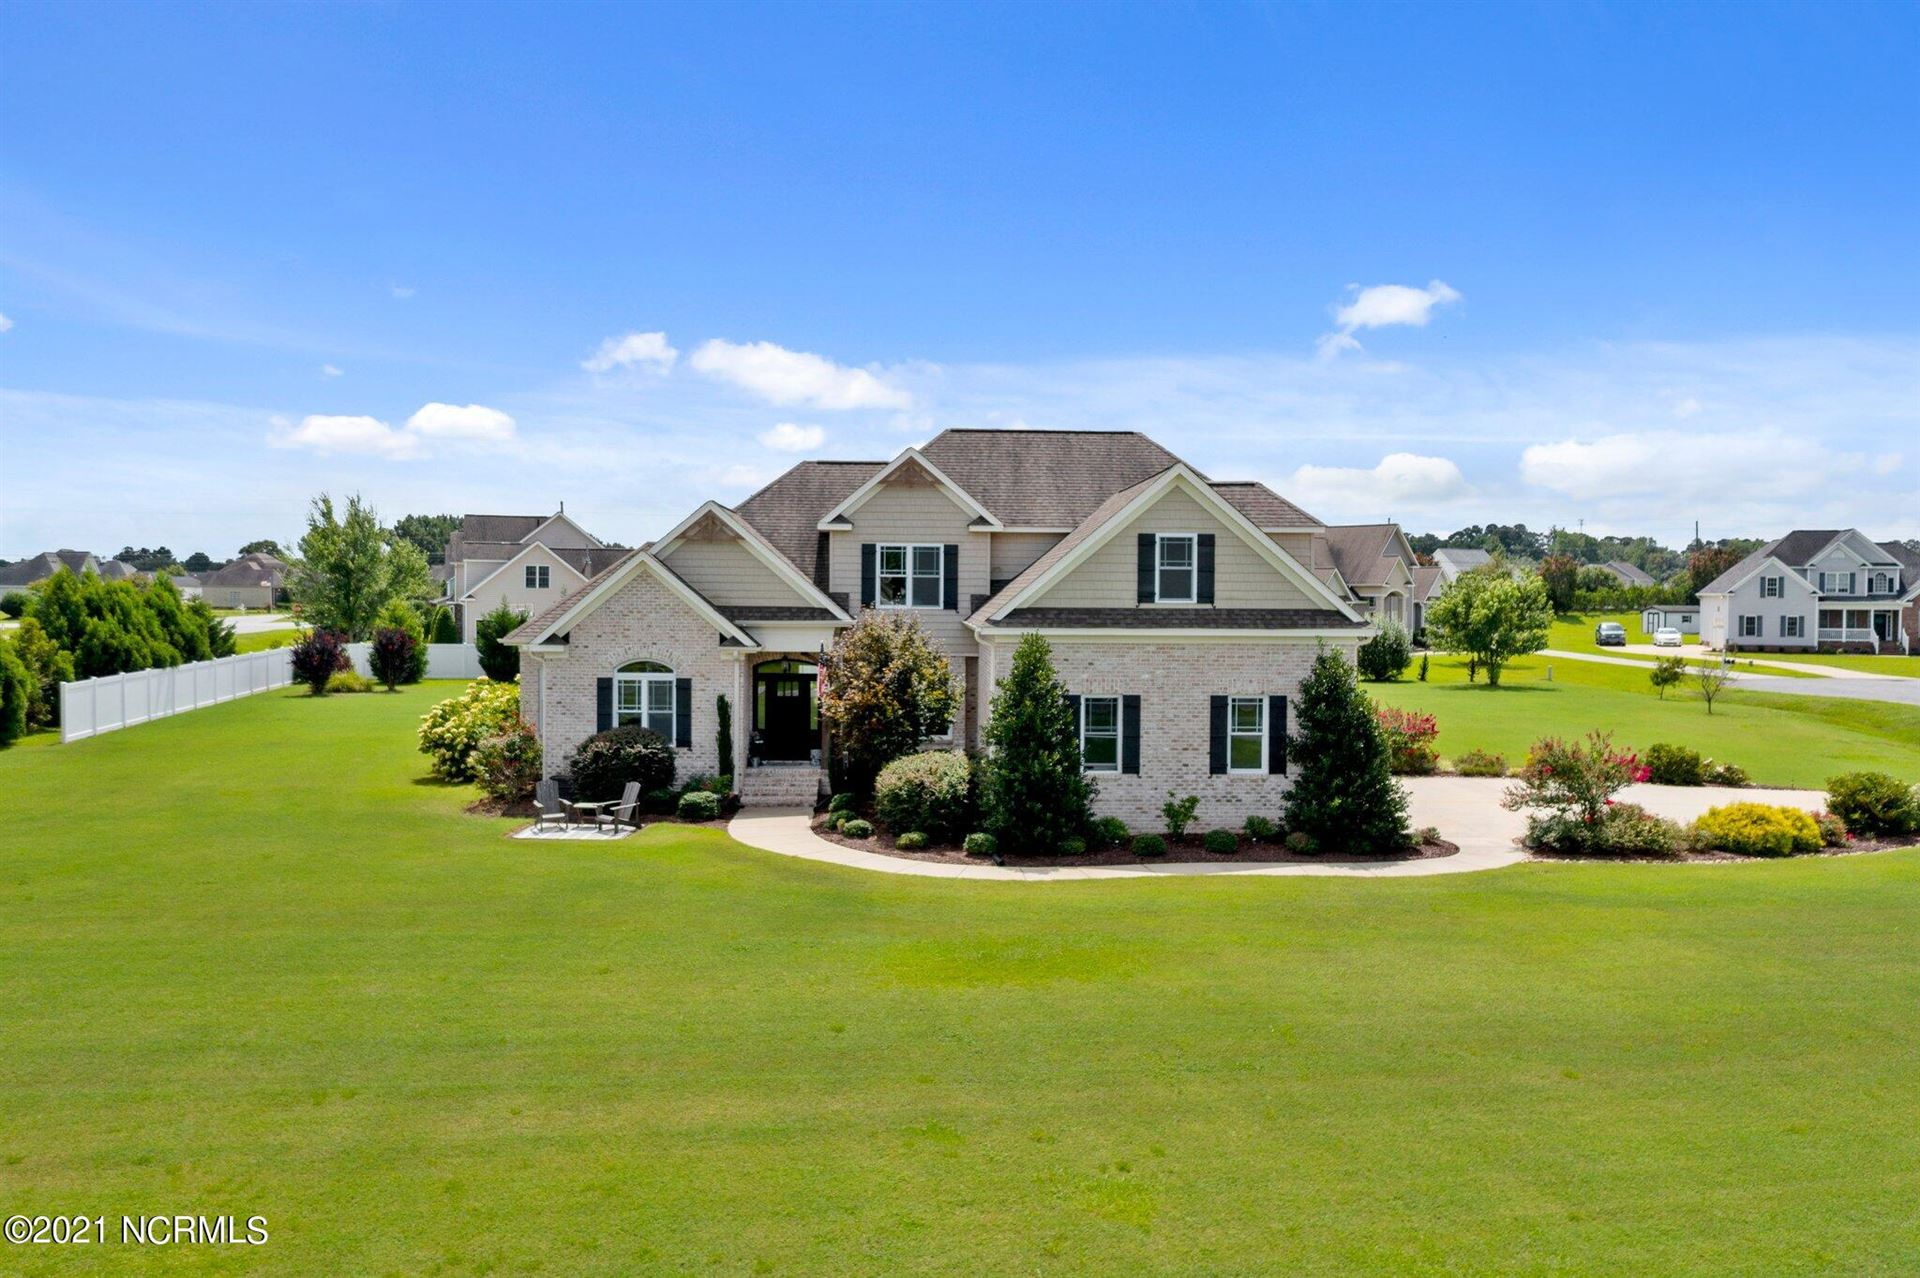 Photo of 268 River Branch Road, Greenville, NC 27858 (MLS # 100285511)